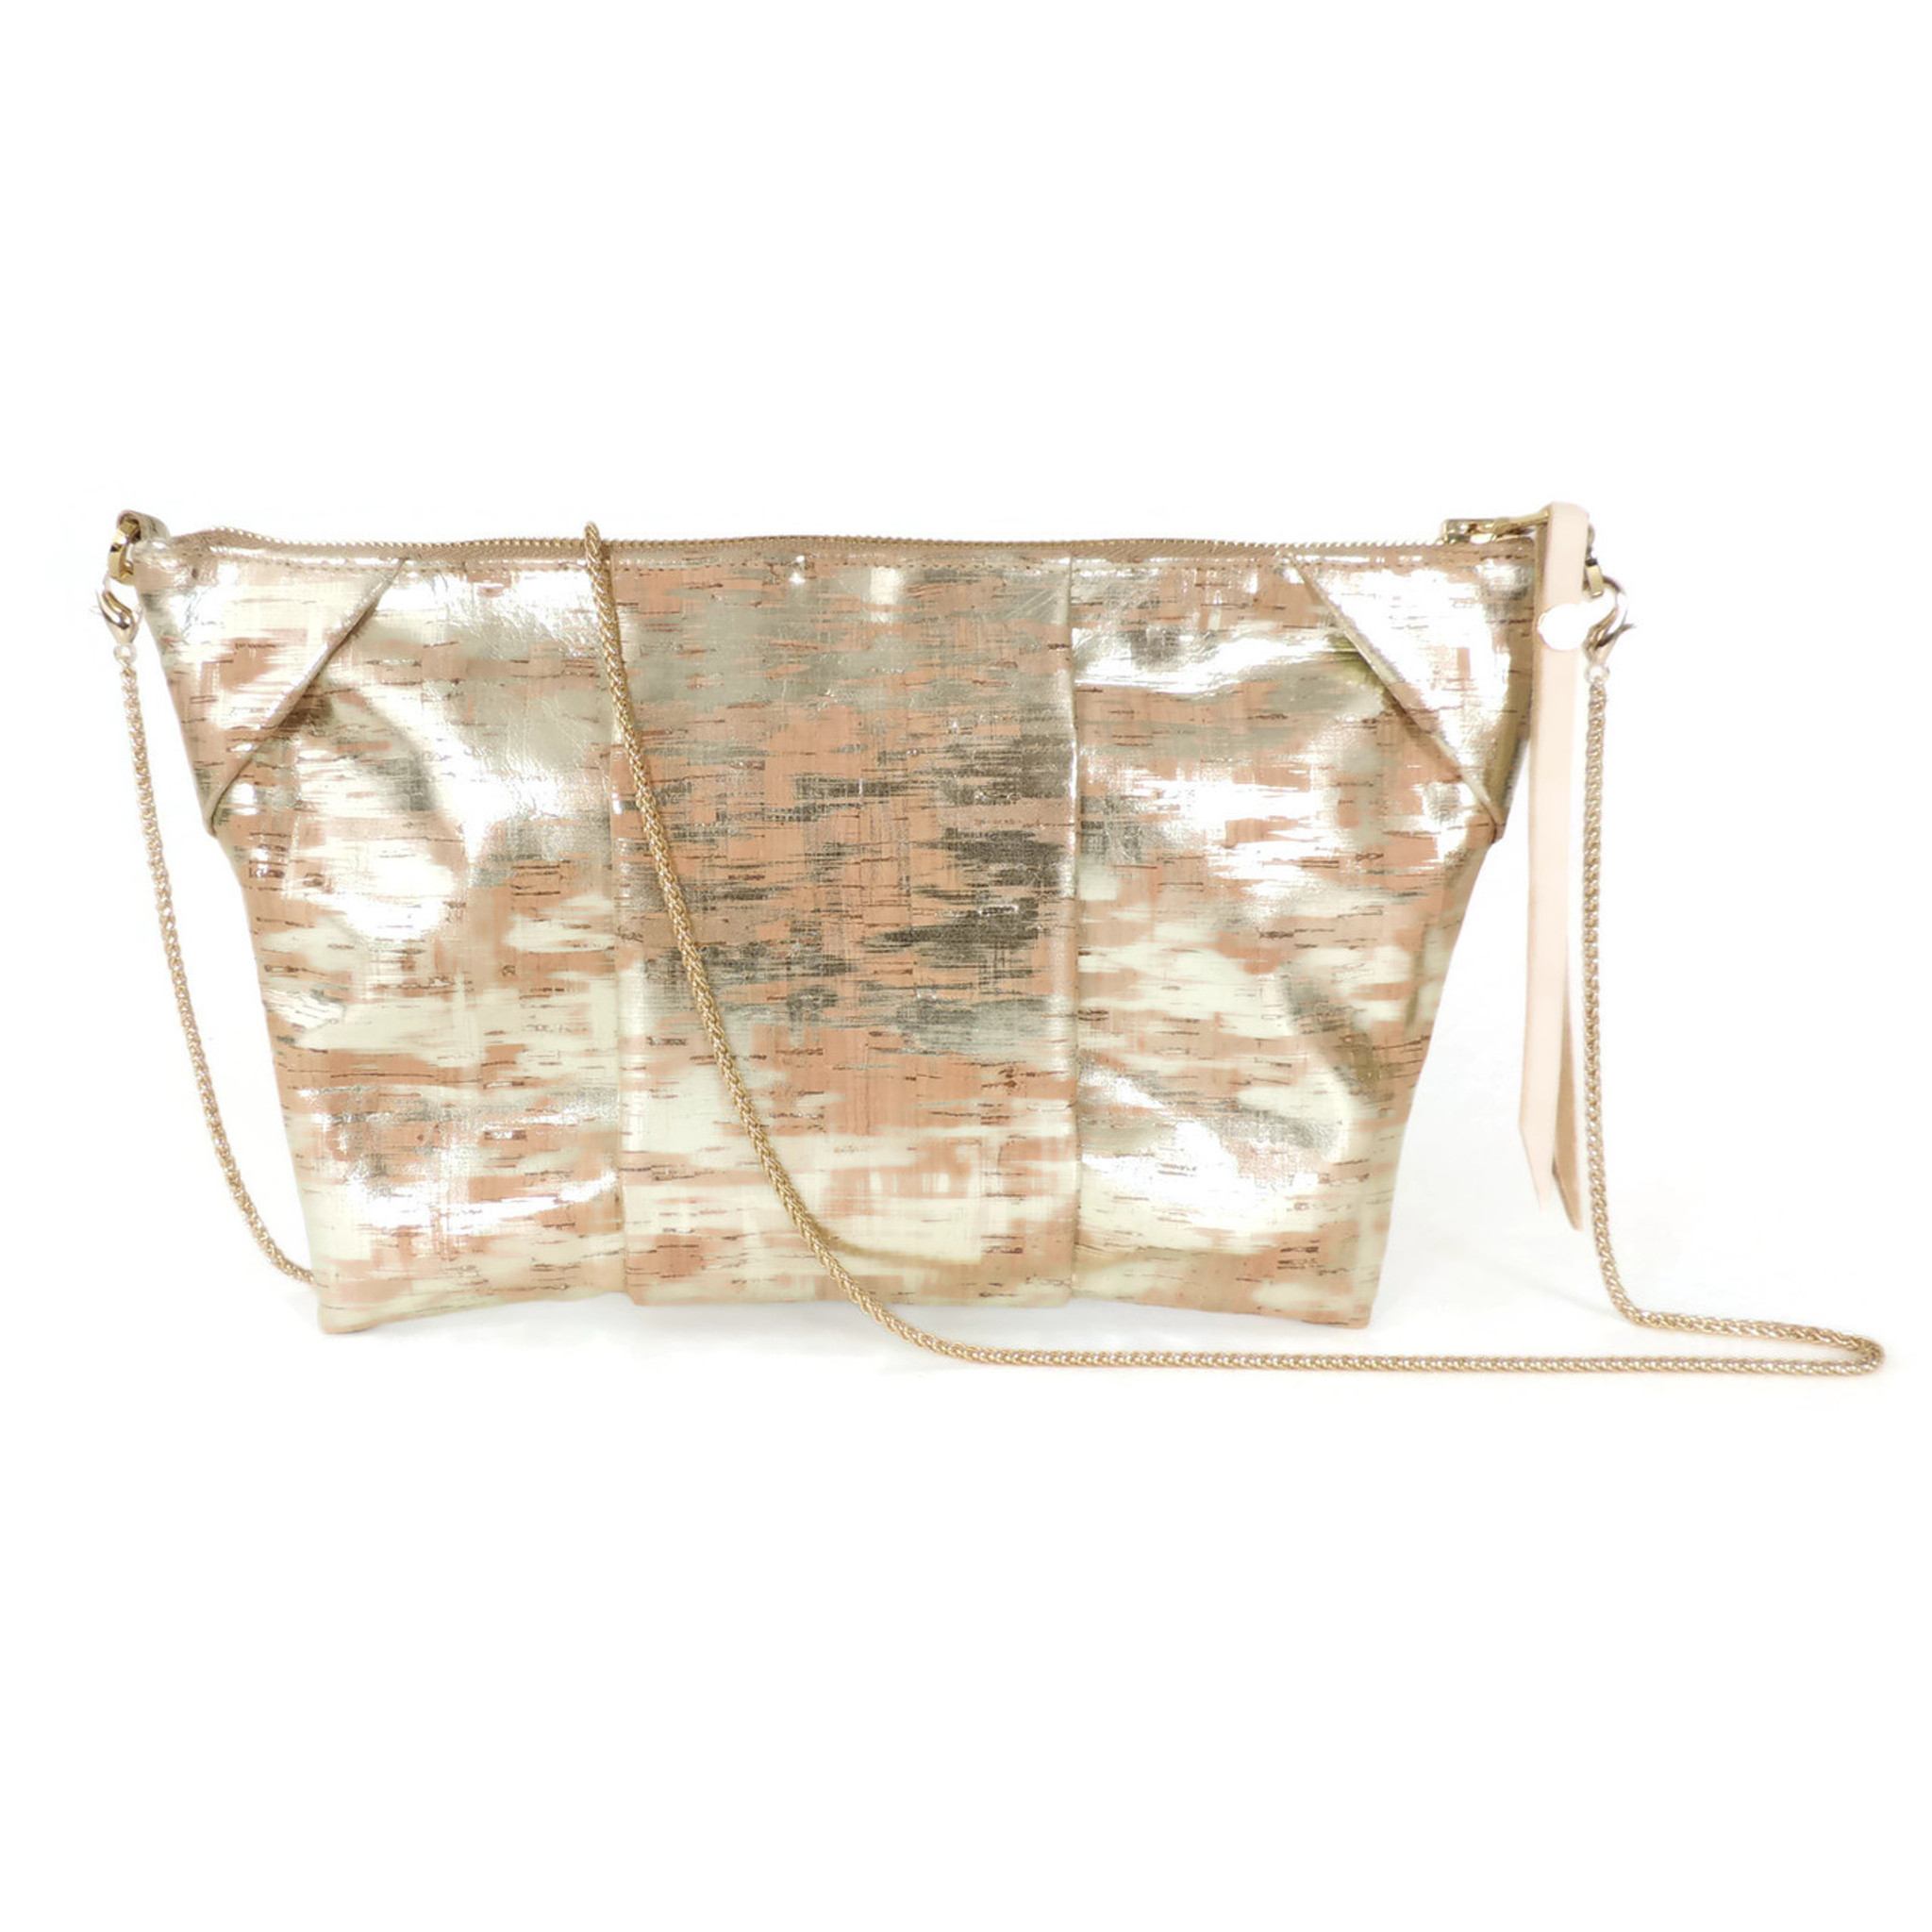 Pleated Clutch in Brushed Gold Cork